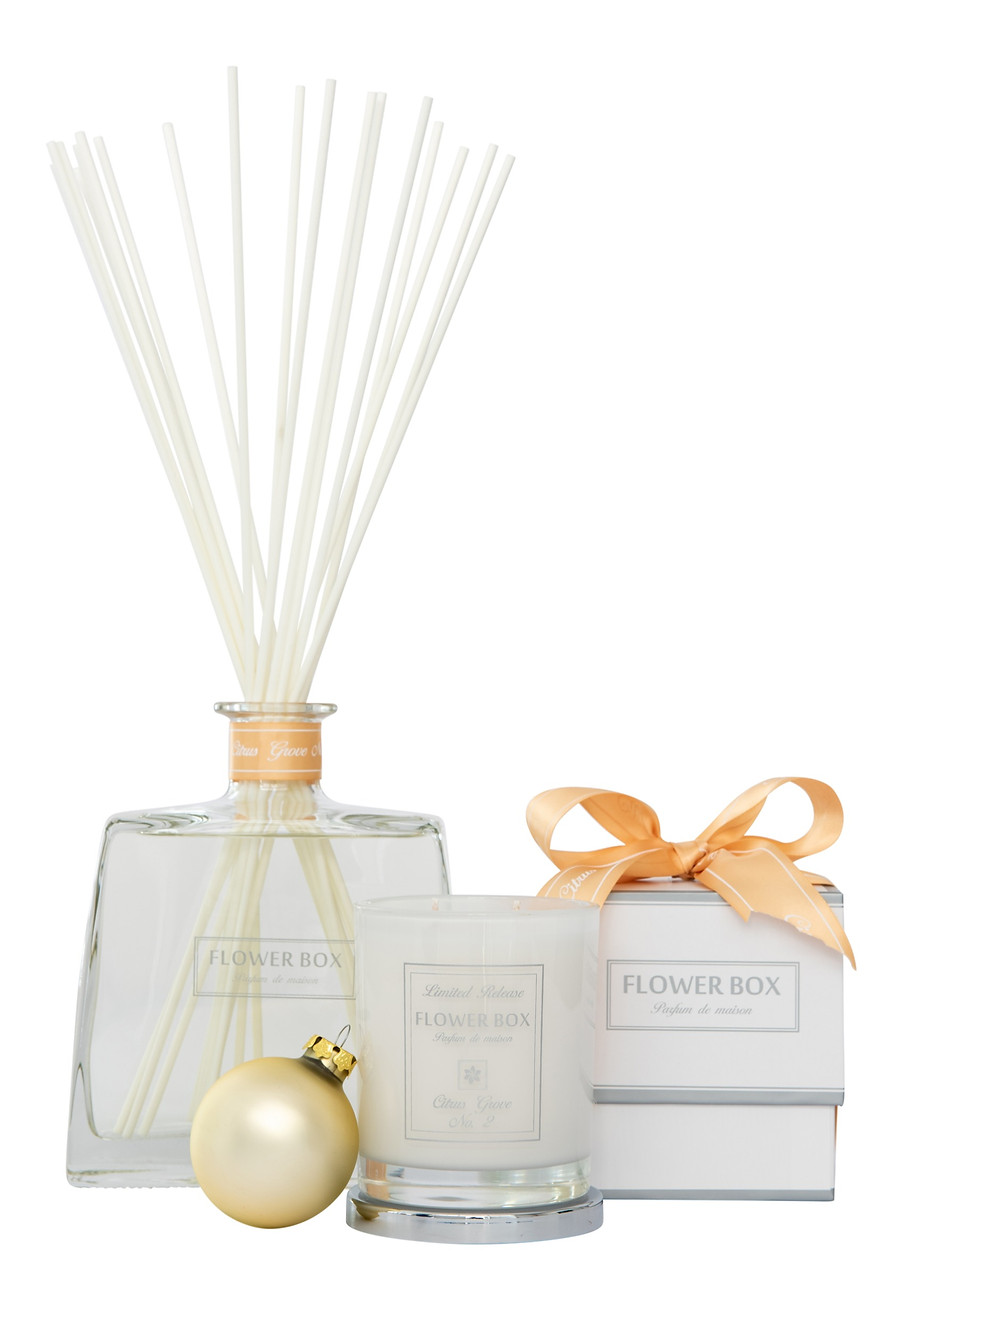 Flower Box Home Fragrance Candle and Diffuser